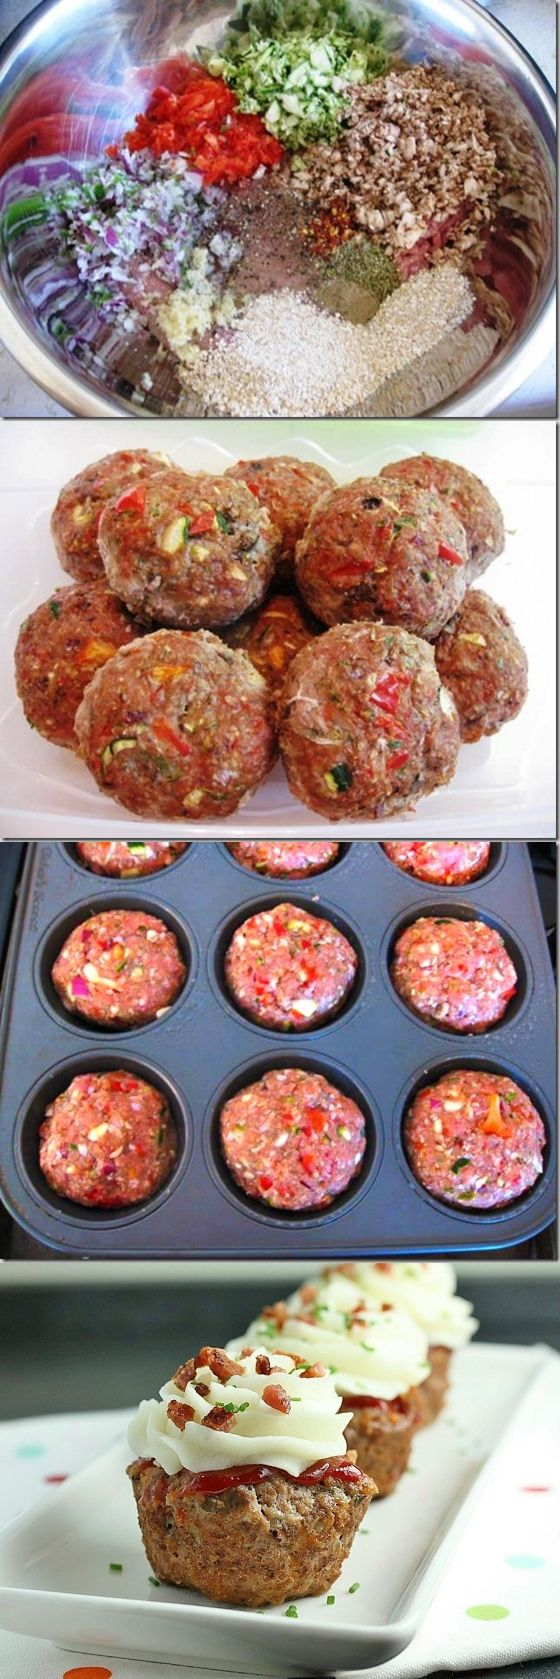 Meatloaf in a cupcake tin. Very tasty! (And significantly cuts down on cook time as well as controlling your portions) Freeze well.